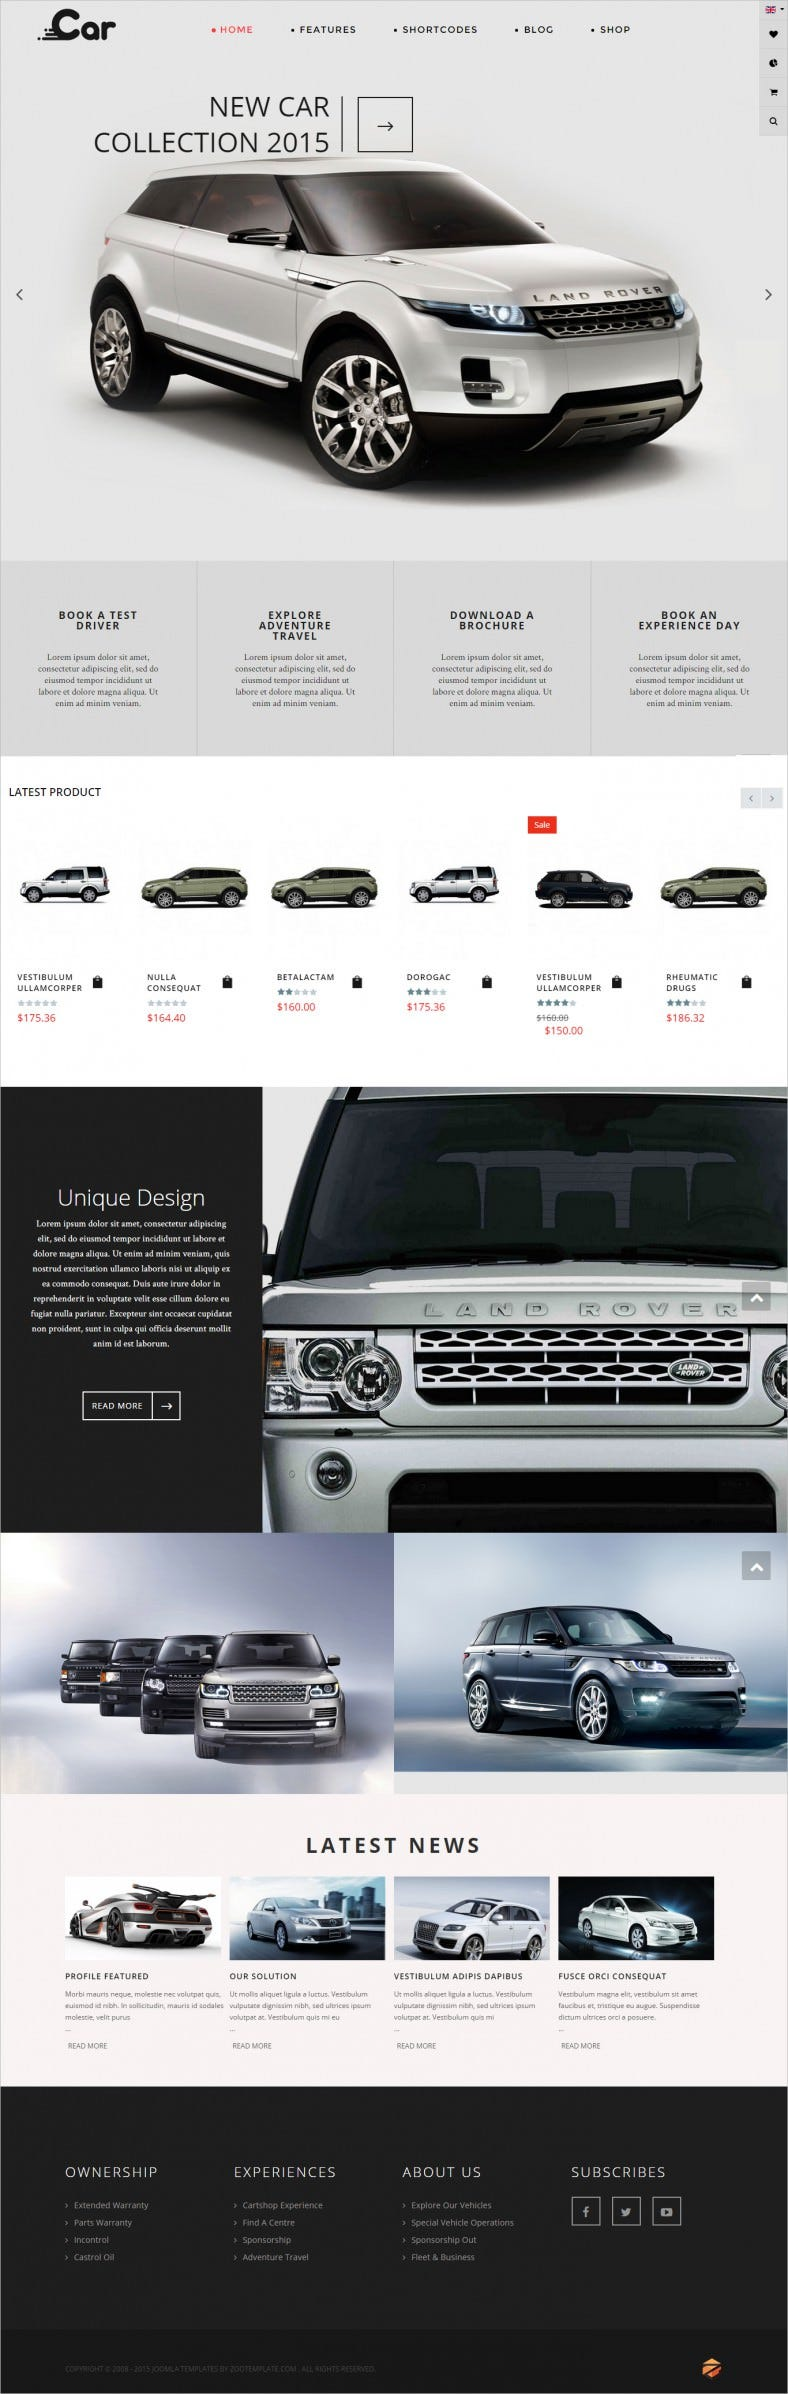 responsive joomla car retail template 788x2394